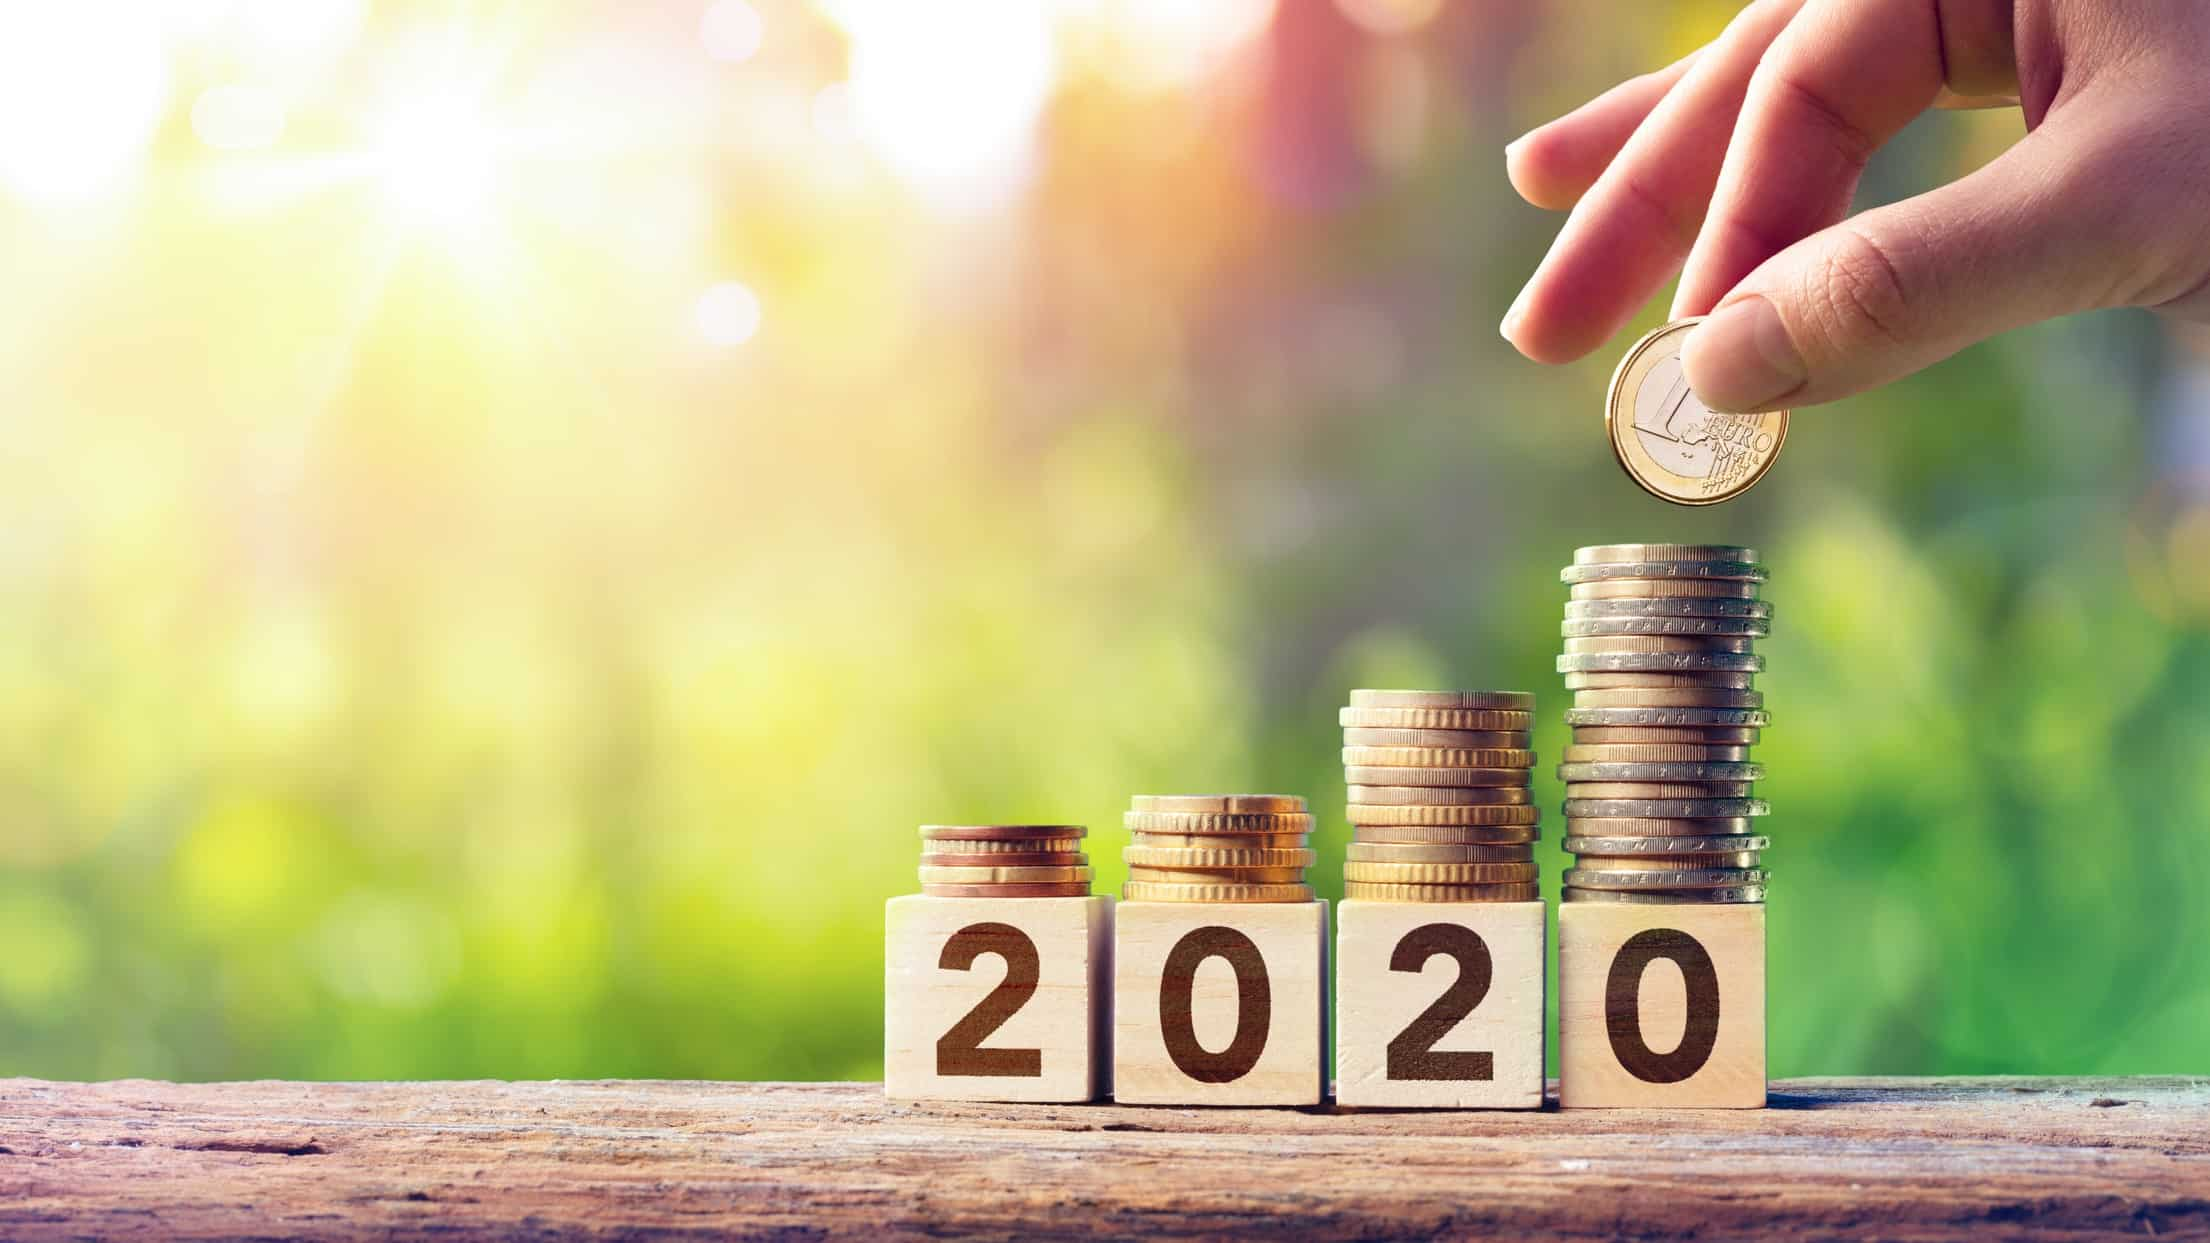 Growing stack of coins on top of wooden blocks spelling out '2020', future wealth, asx future